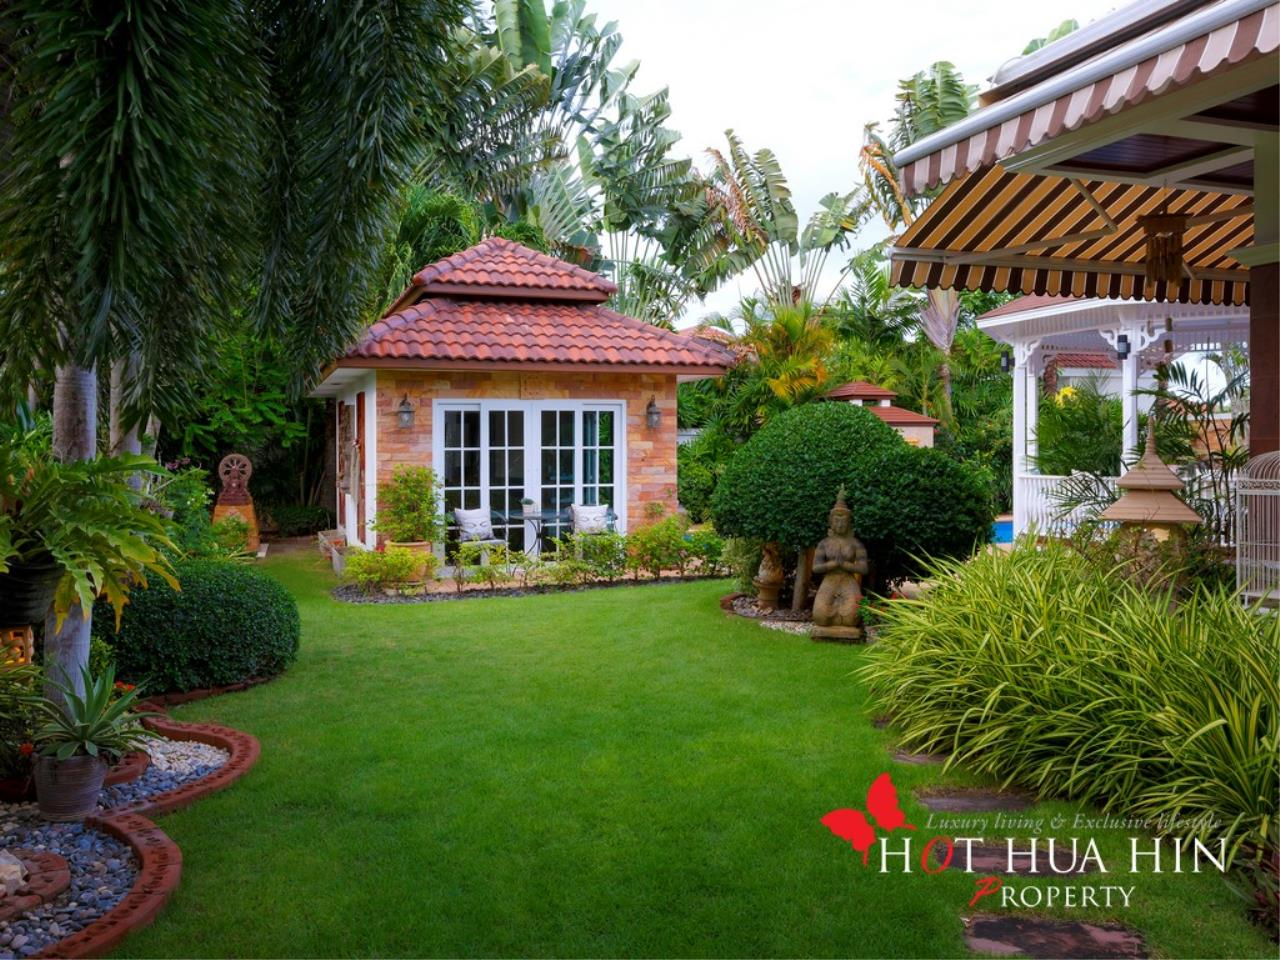 Hot Hua Hin Co. Ltd. Agency's Well Built Home With Stunning Gardens And Two Full Kitchens 24